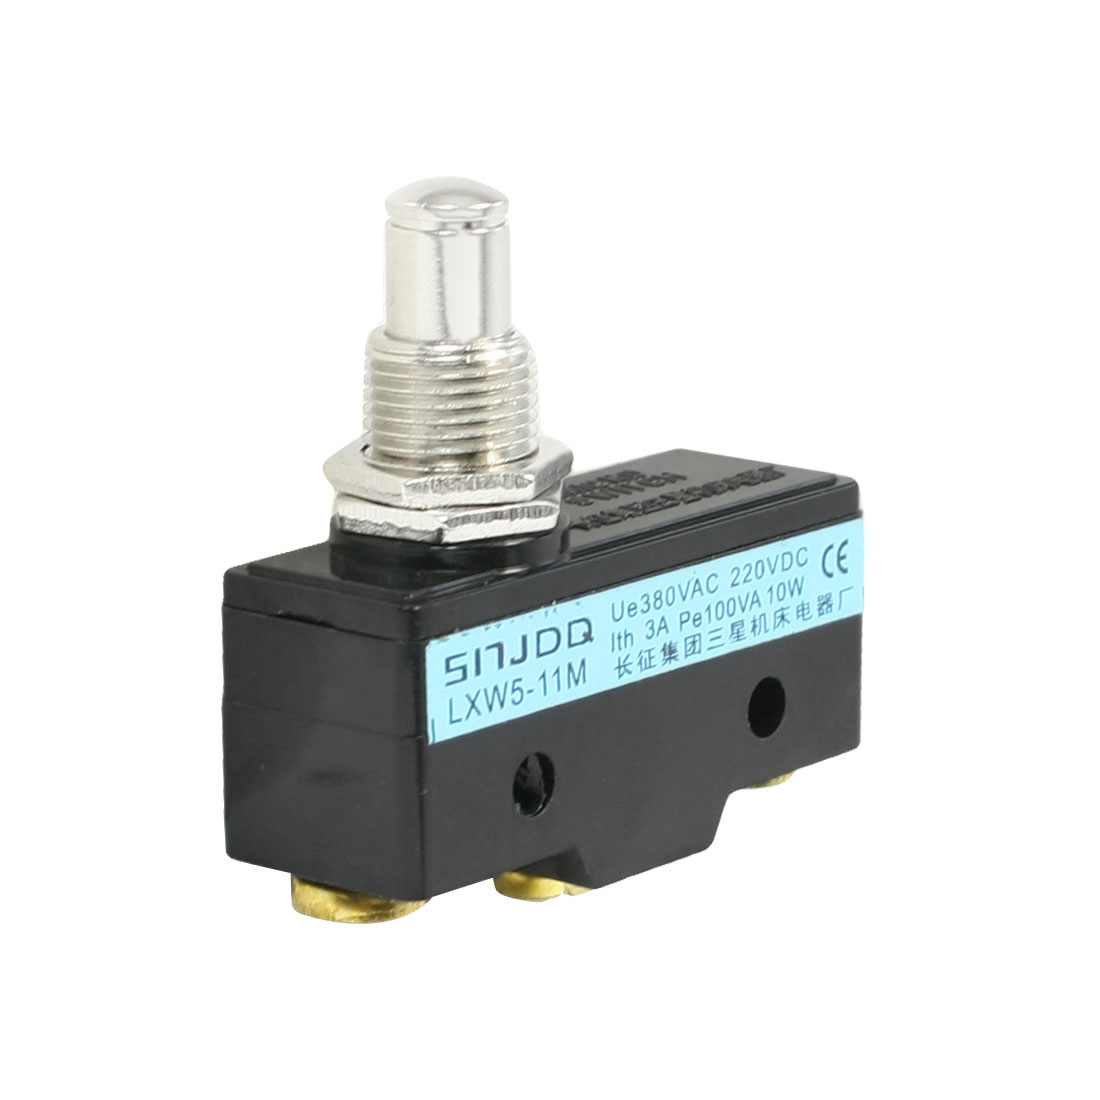 LW5-11M Normally Open/Close SPDT Top Push Plunger Basic Limit Switch